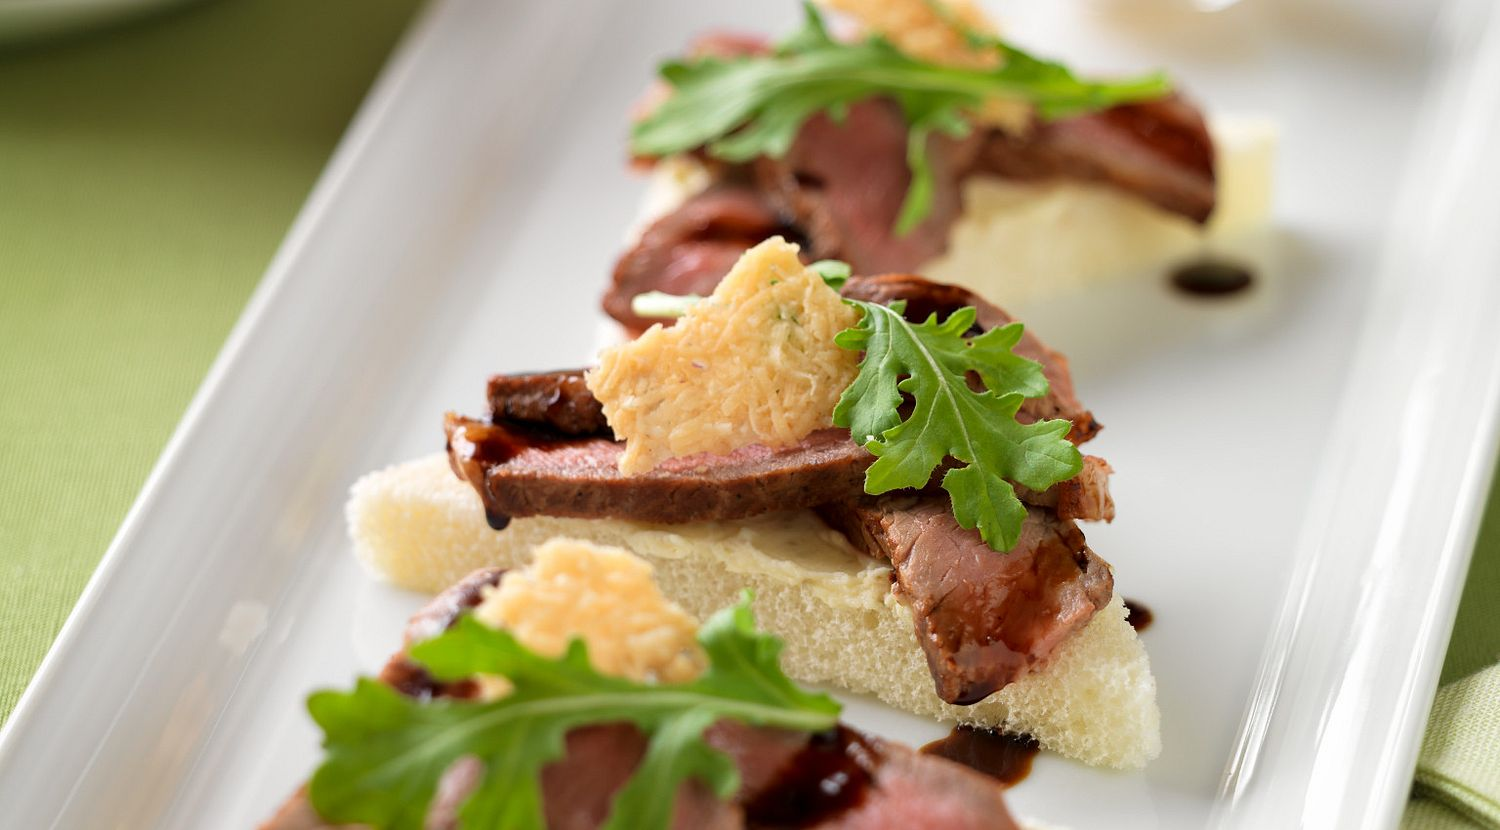 Beef Crostini with Parmesan Crisps and Balsamic Drizzle